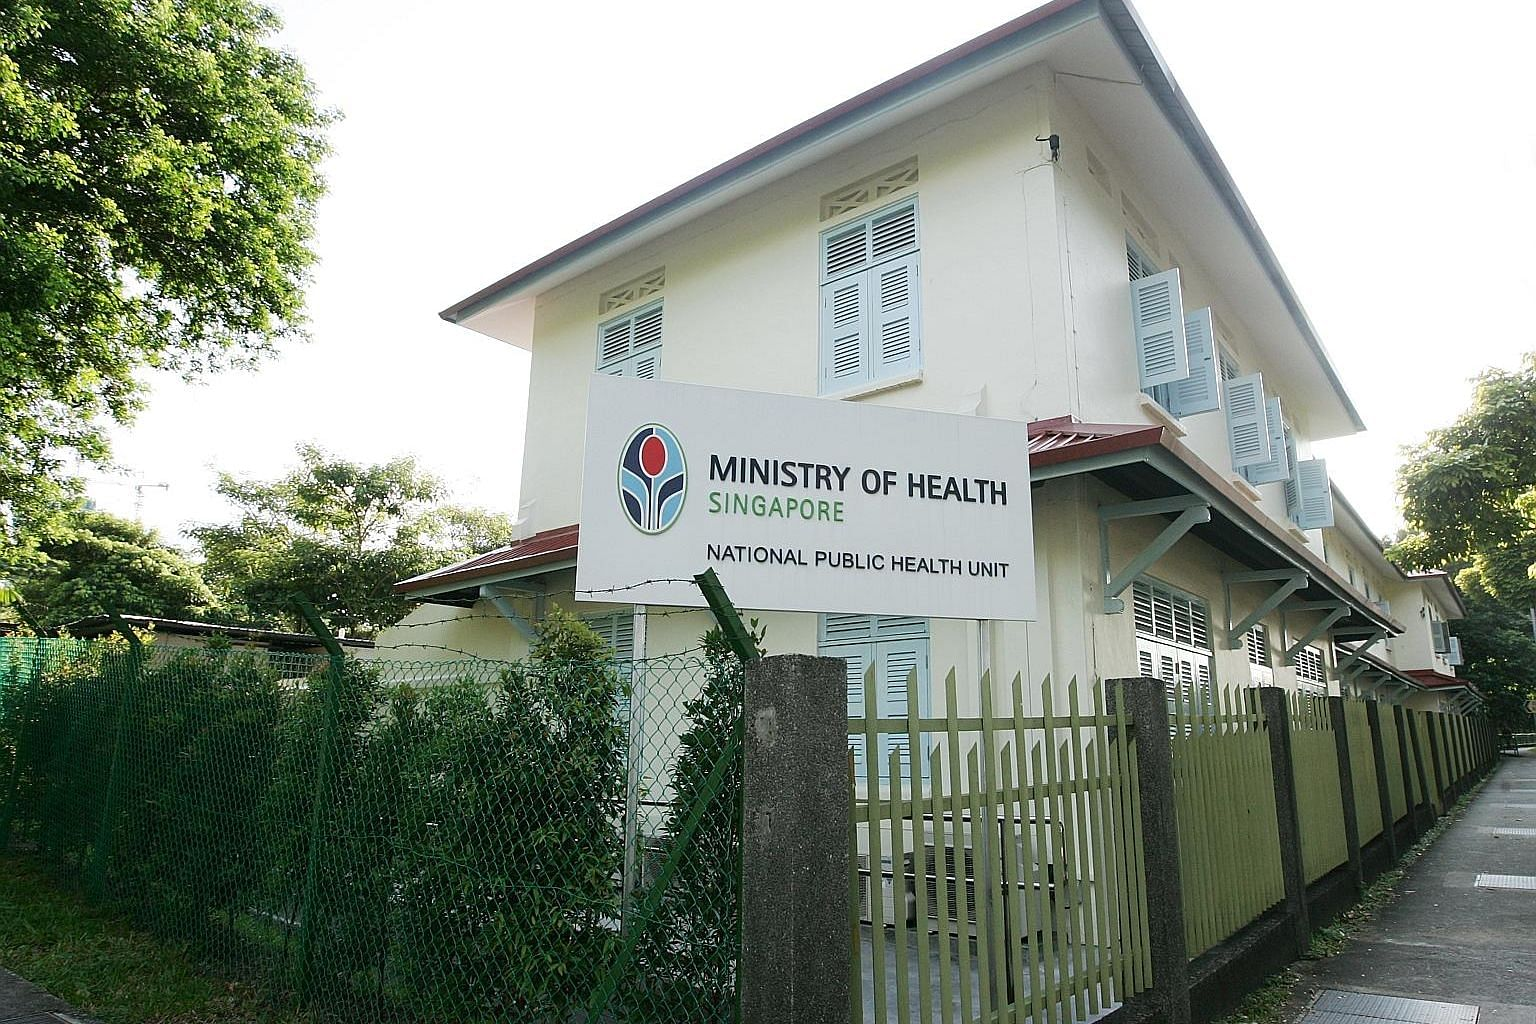 Ler Teck Siang, the doctor at the centre of the leak, took on the job of NPHU head in March 2012. Then 30, he had been a doctor for nearly seven years. The National Public Health Unit (NPHU), which was located at 142 Moulmein Road, has since been ren